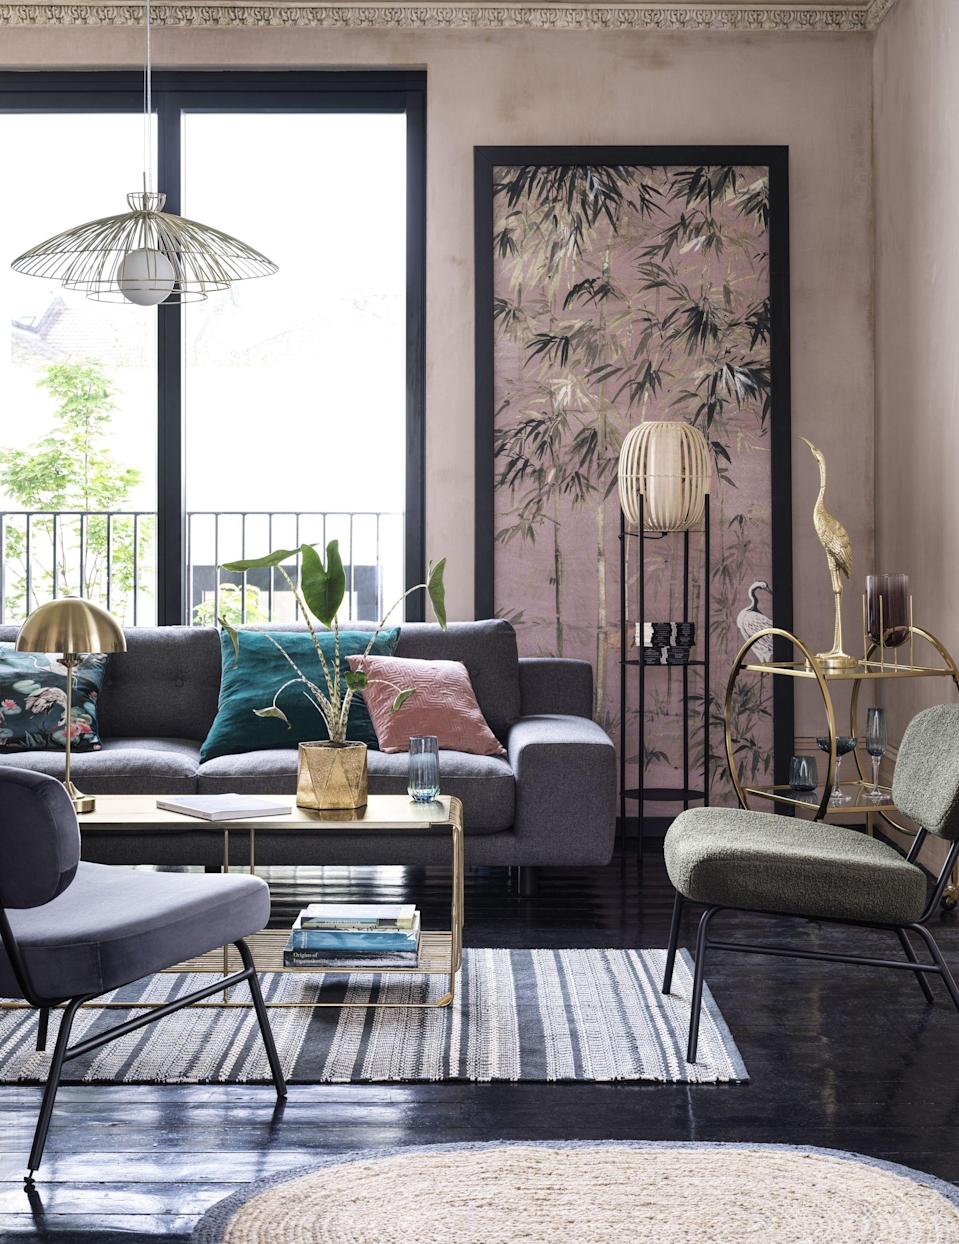 """<p><b>Habitat has just launched its gorgeous autumn/winter 2021 collection, packed with energising colours, calming neutrals and cosy comforting <a href=""""https://www.housebeautiful.com/uk/decorate/living-room/g32357518/living-room-accessories/"""" rel=""""nofollow noopener"""" target=""""_blank"""" data-ylk=""""slk:accessories"""" class=""""link rapid-noclick-resp"""">accessories</a>. And, with prices starting from just £3, it's never been easier to refresh your space for less. </b><b><br></b></p><p>'The role of the home has evolved, and for many, the meaning of """"home"""" has expanded to encompass every area of our lives,' says Rona Olds Head of Product, Home & Furniture at <a href=""""https://www.habitat.co.uk/"""" rel=""""nofollow noopener"""" target=""""_blank"""" data-ylk=""""slk:Habitat"""" class=""""link rapid-noclick-resp"""">Habitat</a>. </p><p>'We see many of these shifts as permanent, with the need for our living spaces to work harder than ever as our lifestyles continue to change. Whether this means creating a home office in the bedroom, or a workout area in the living room, we're pleased to launch hundreds of new pieces that address this modern way of life.'<br></p><p>On that note, take a look at some of our favourite key pieces to add to your wish list...</p>"""